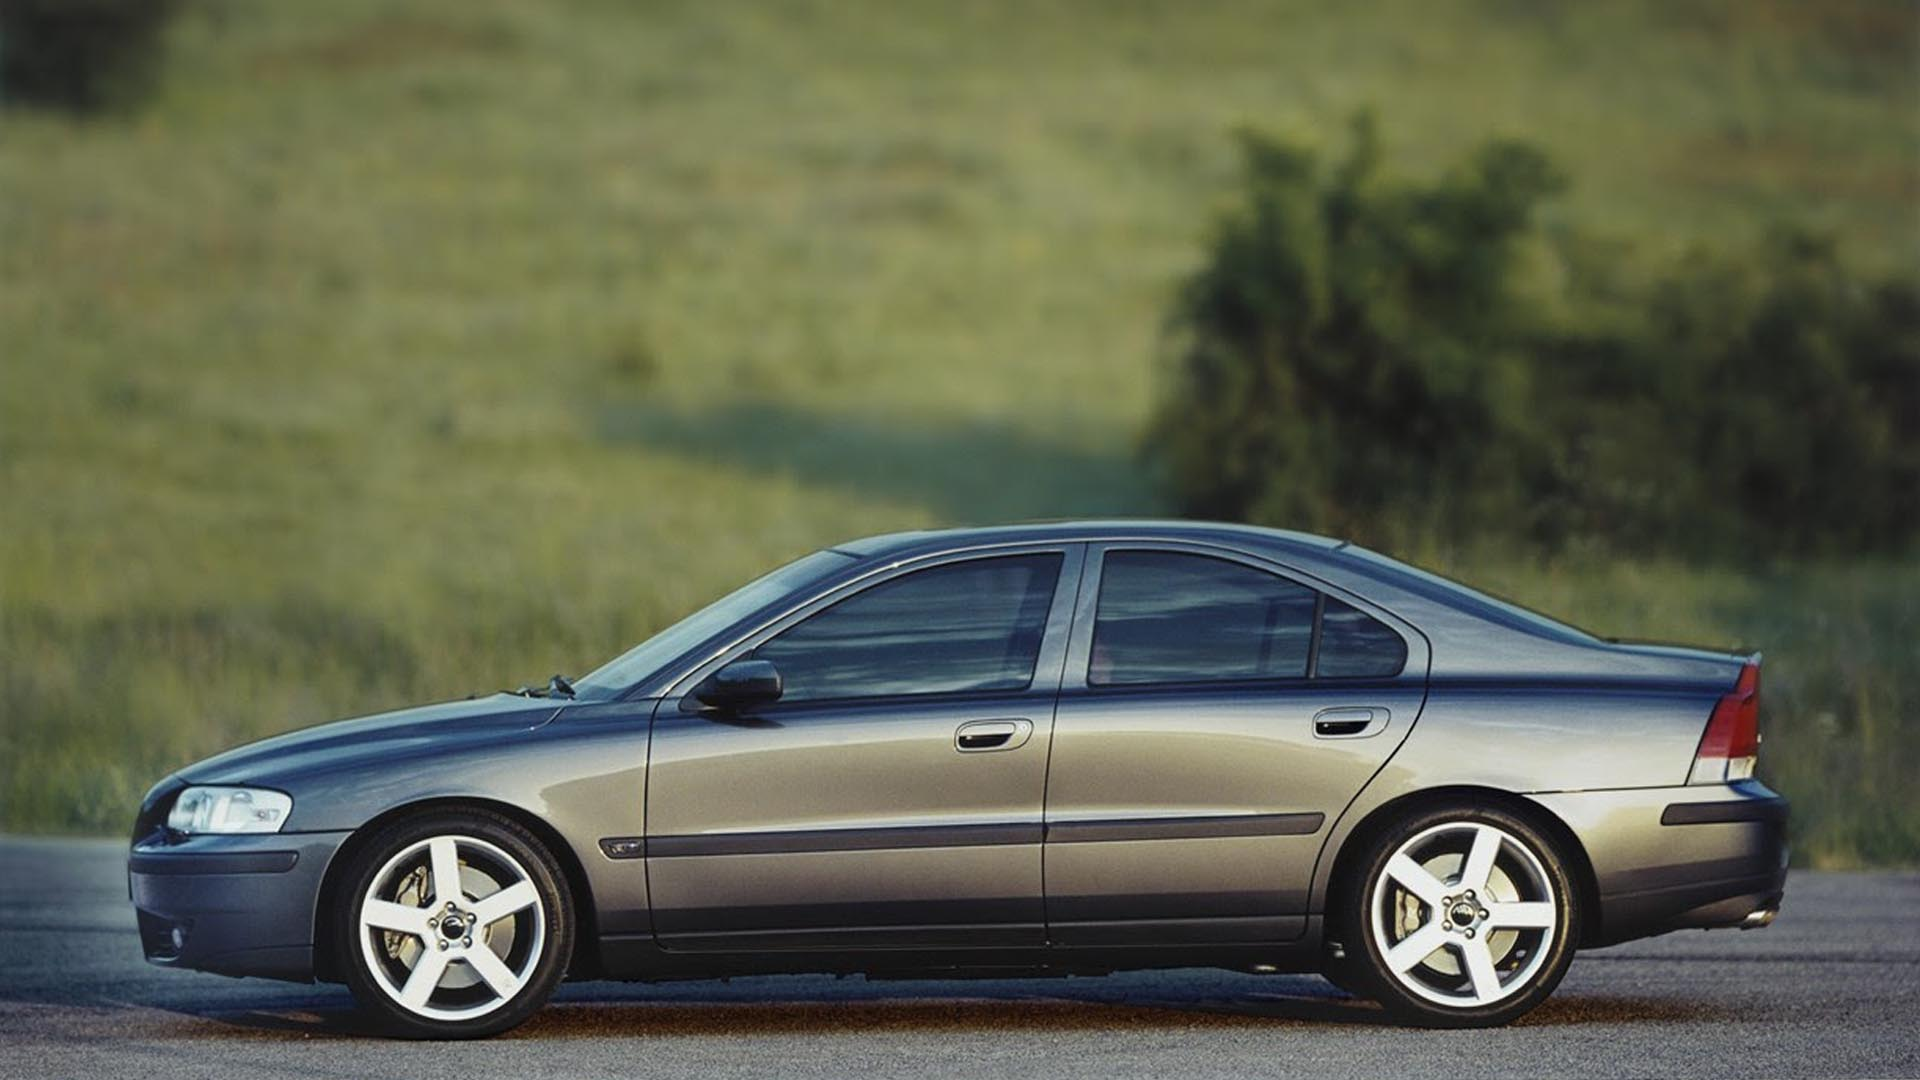 Is The Underrated And Overlooked Volvo S60R A Reliable Used Car?